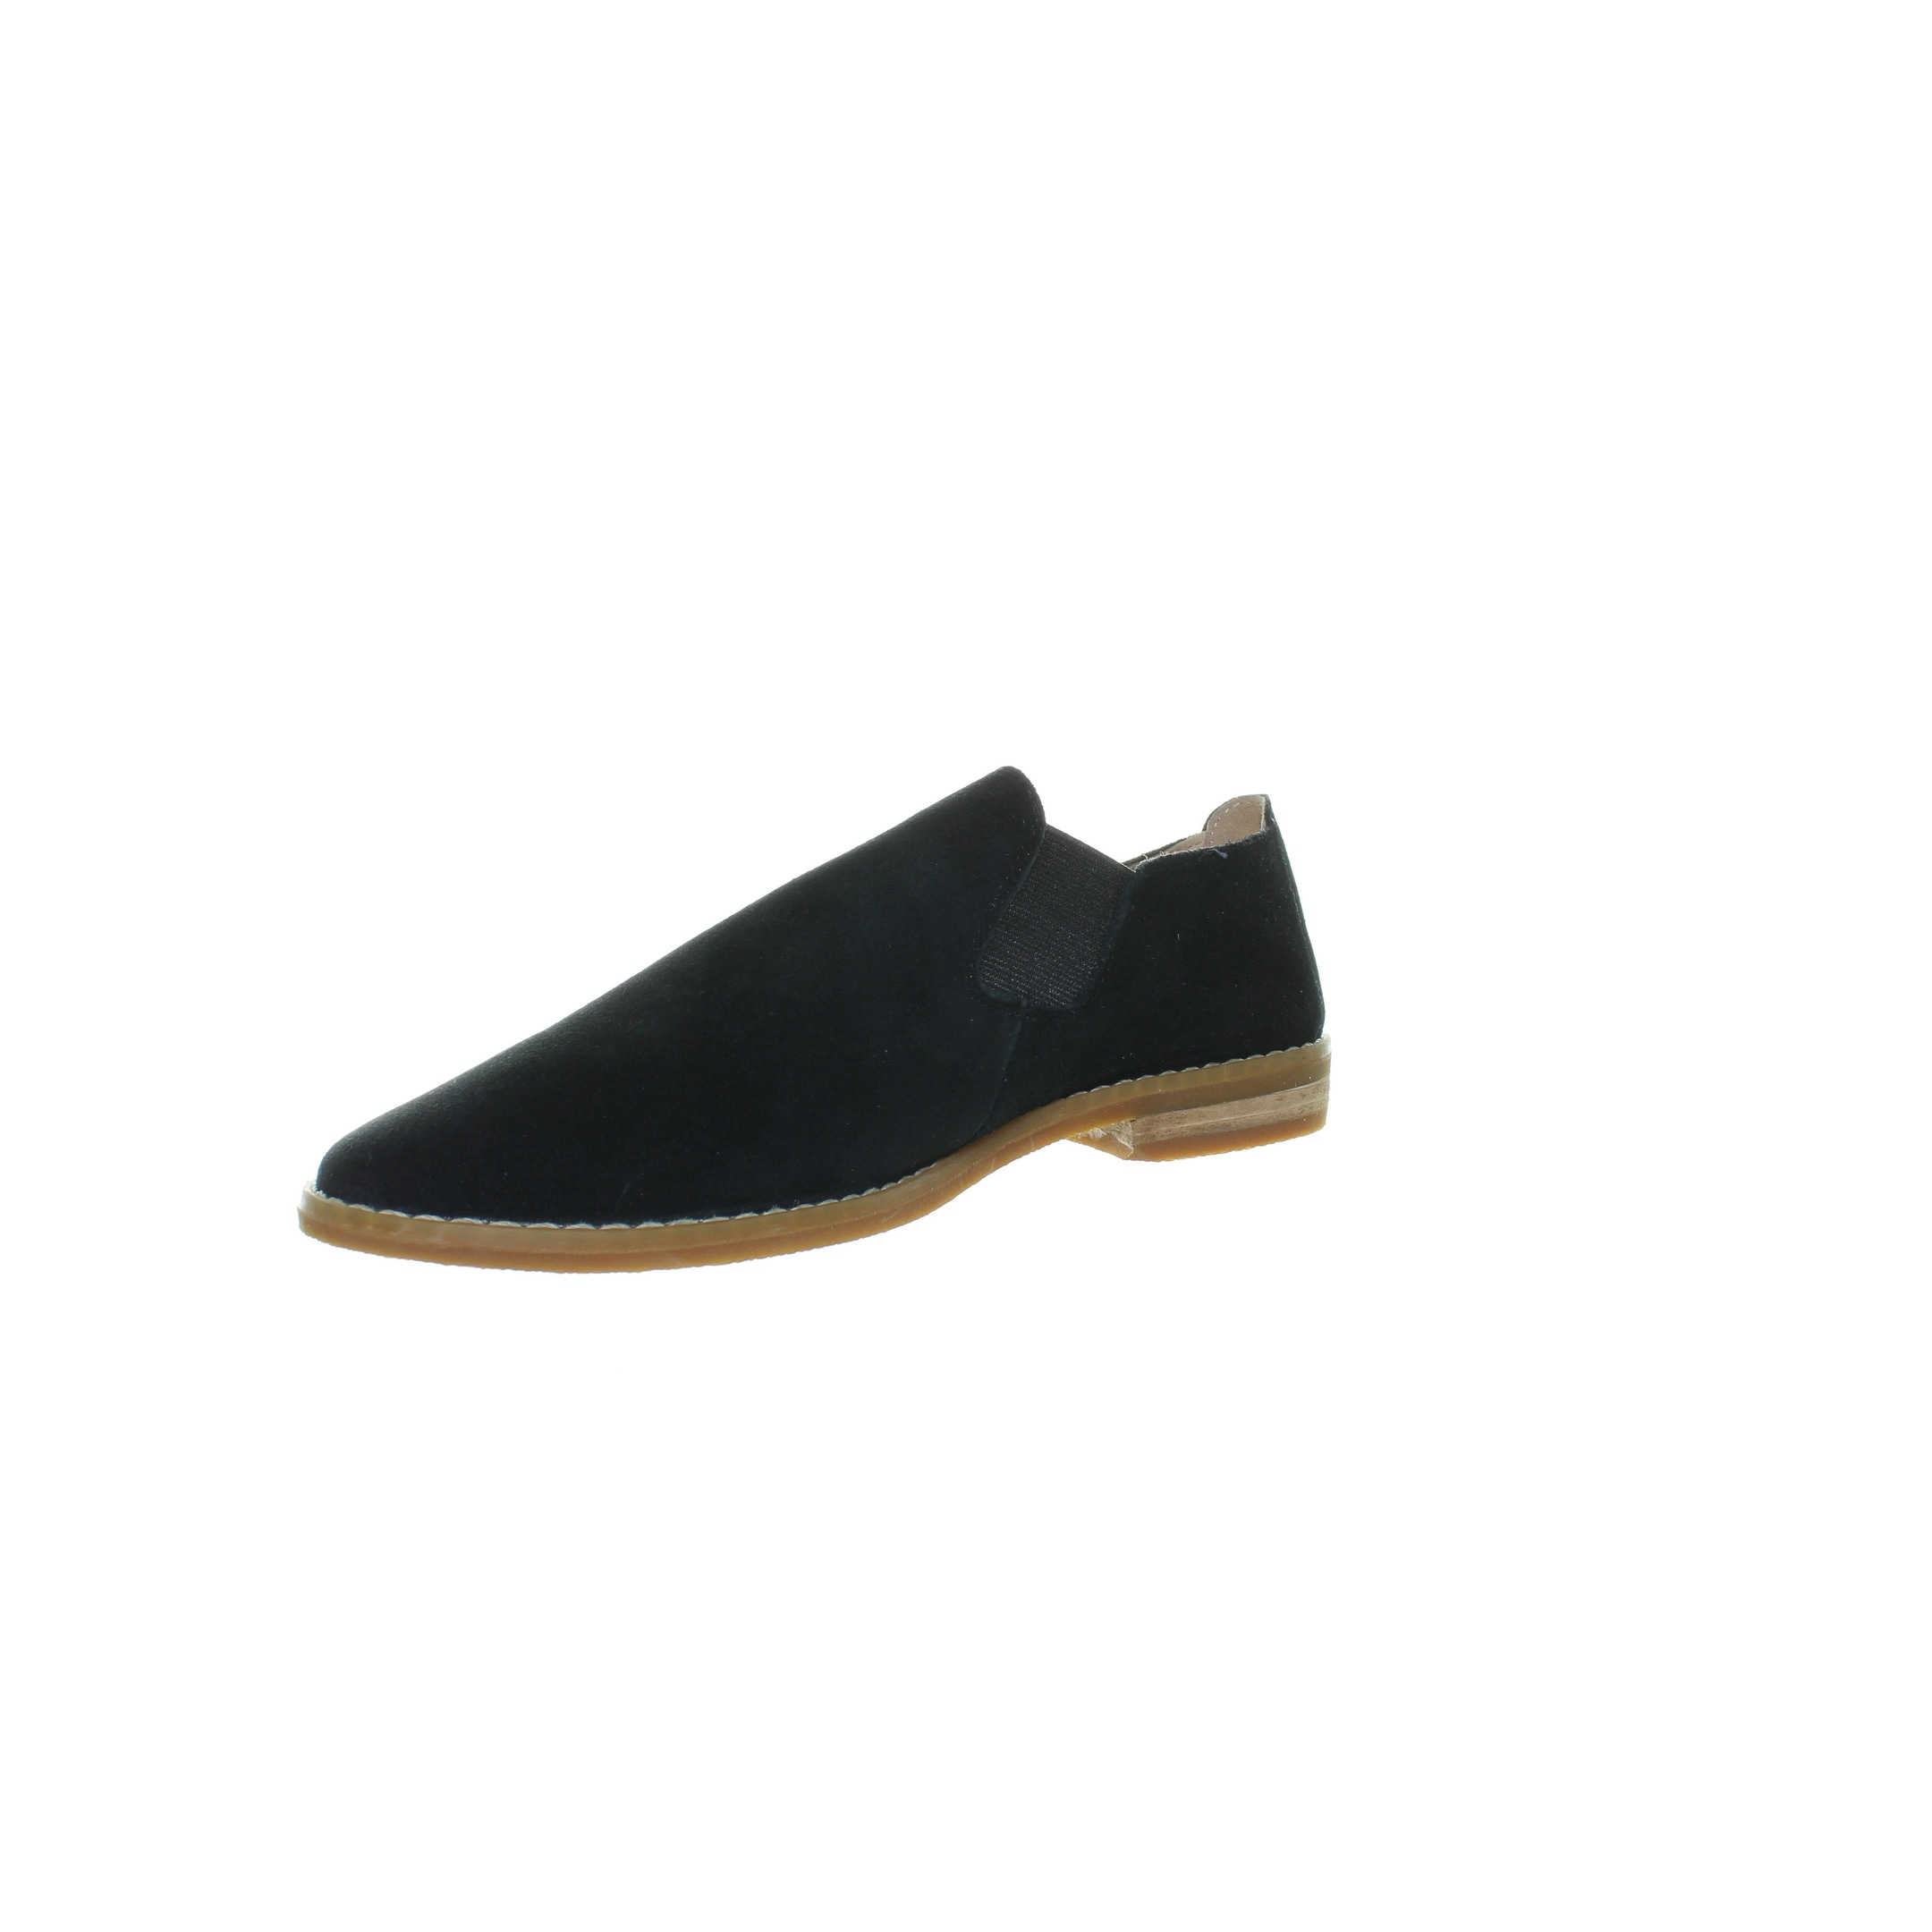 Shop Hush Puppies Womens Analise Clever